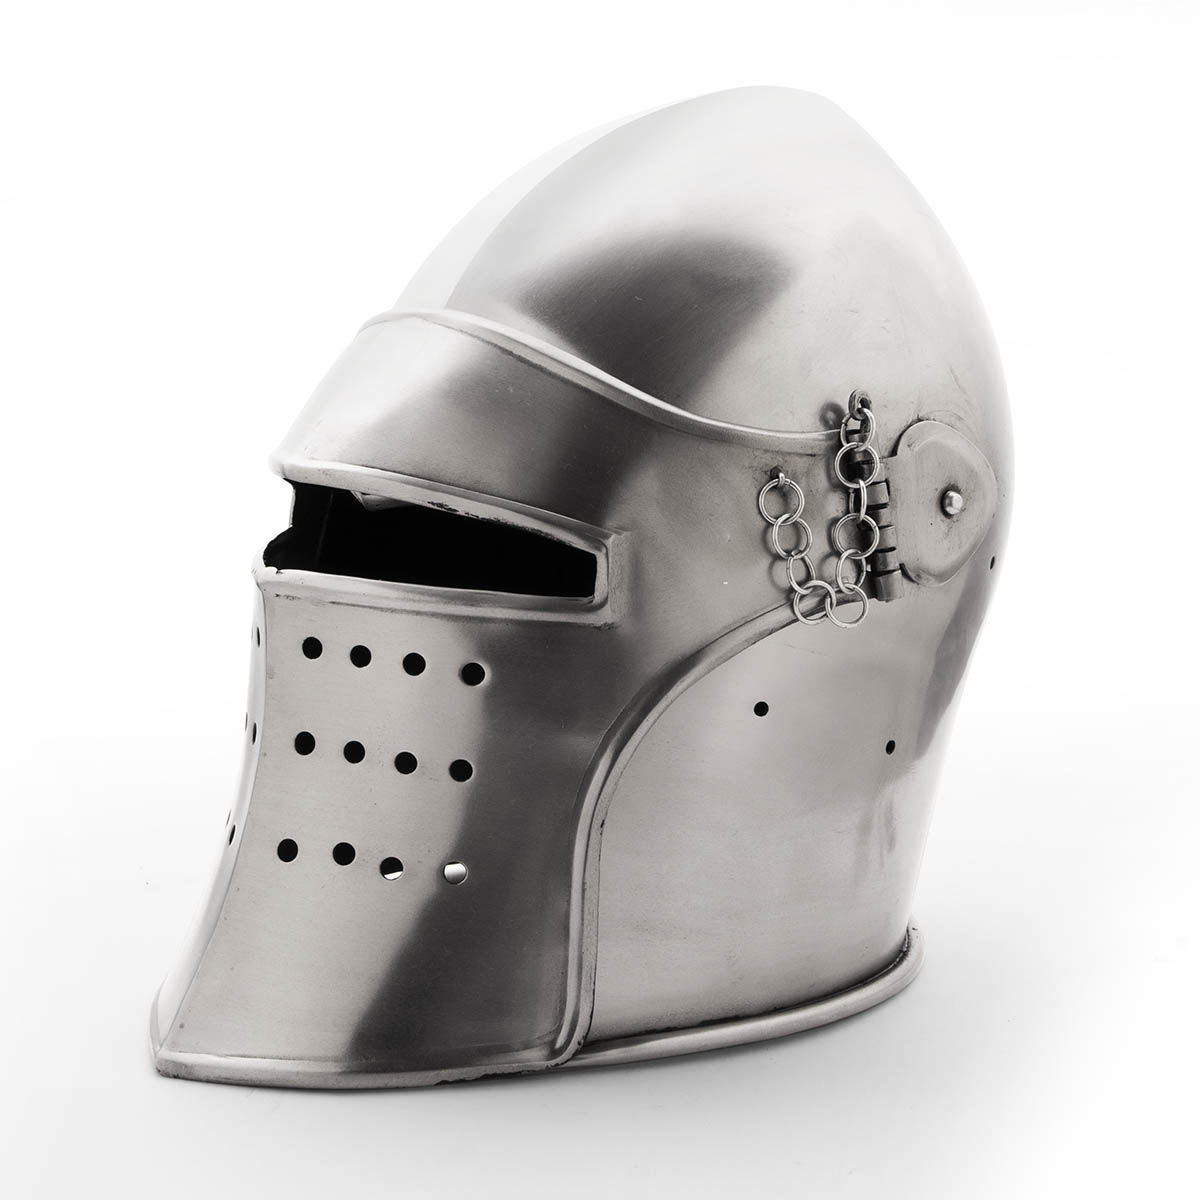 Medieval 18 Gauge Steel Bascinet Helmet  With Detachable Visor